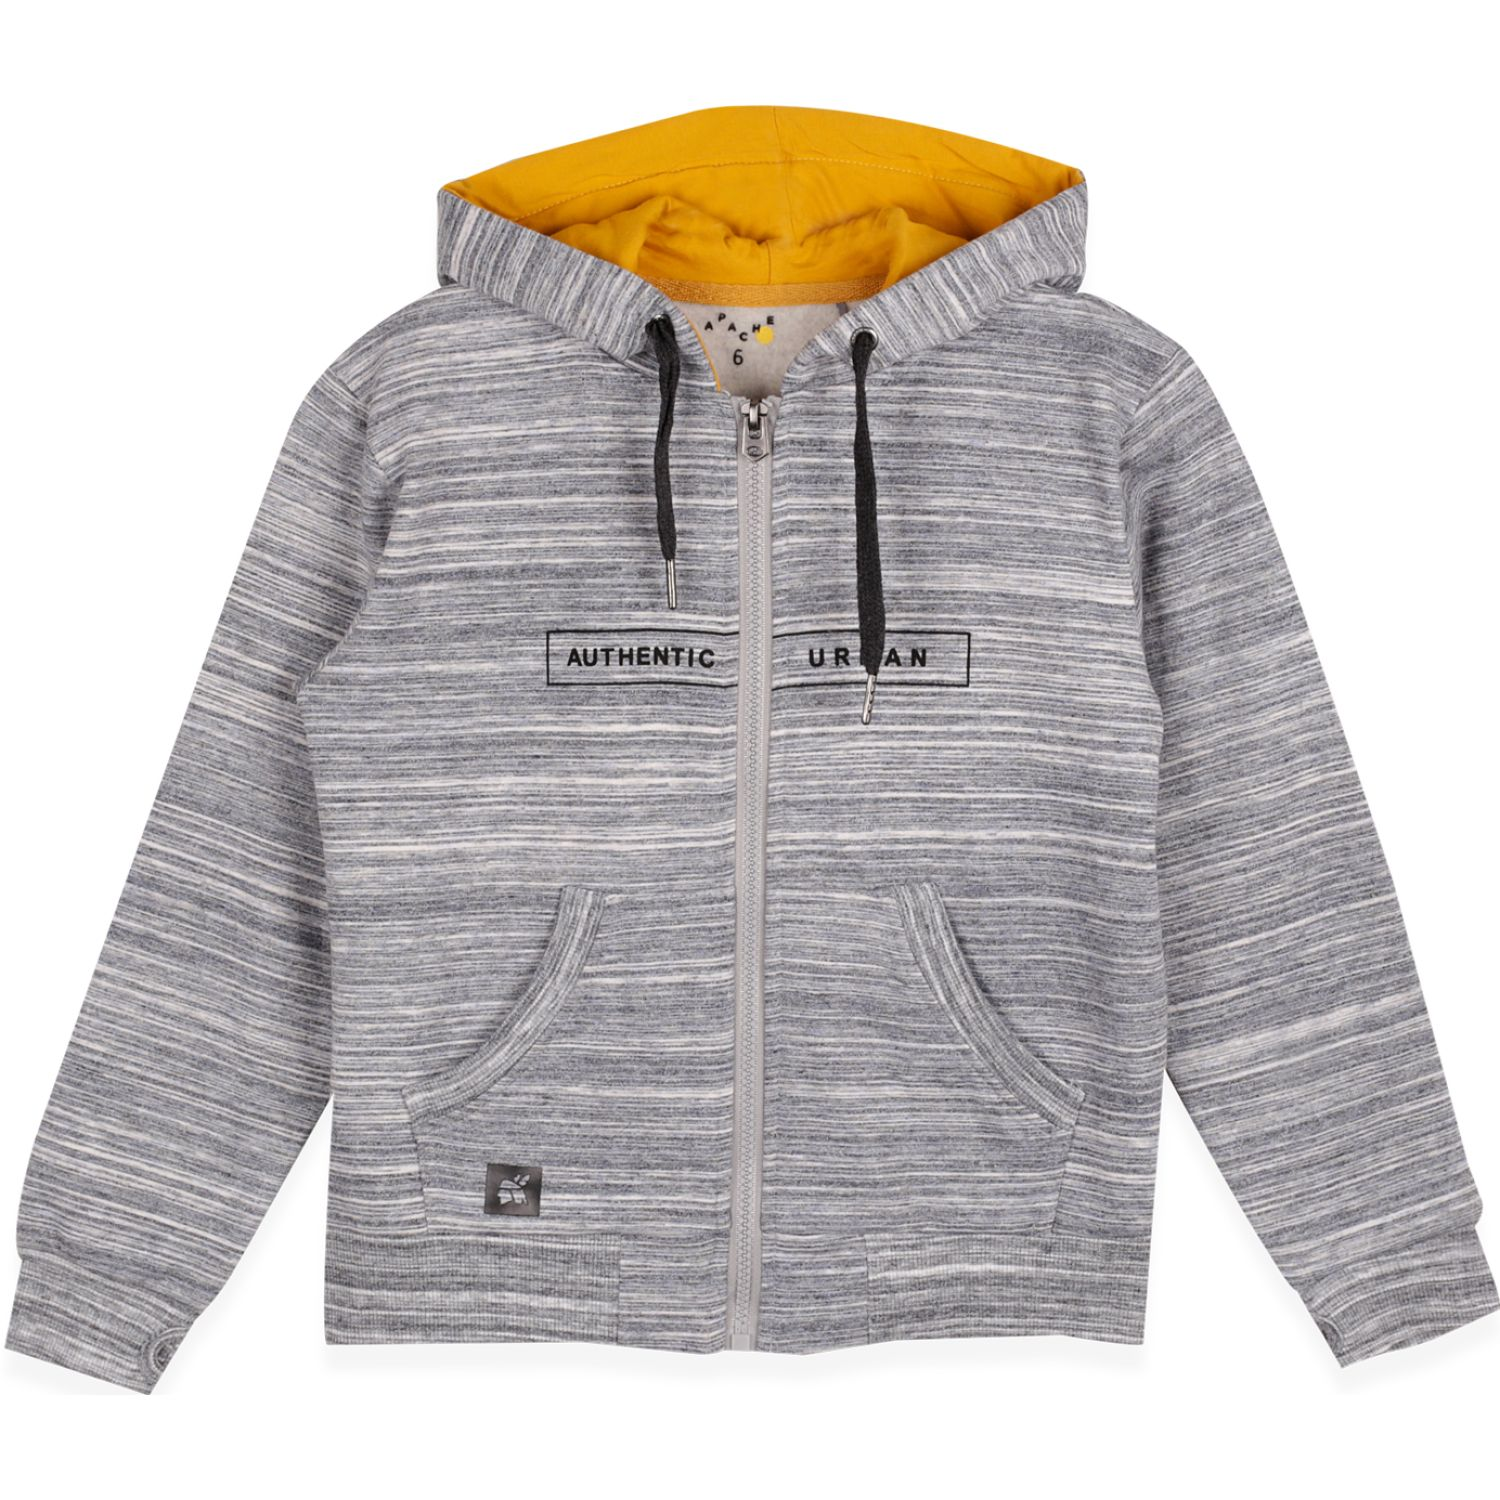 PILLIN Poleron Niño Gris Hoodies y Sweaters Fashion